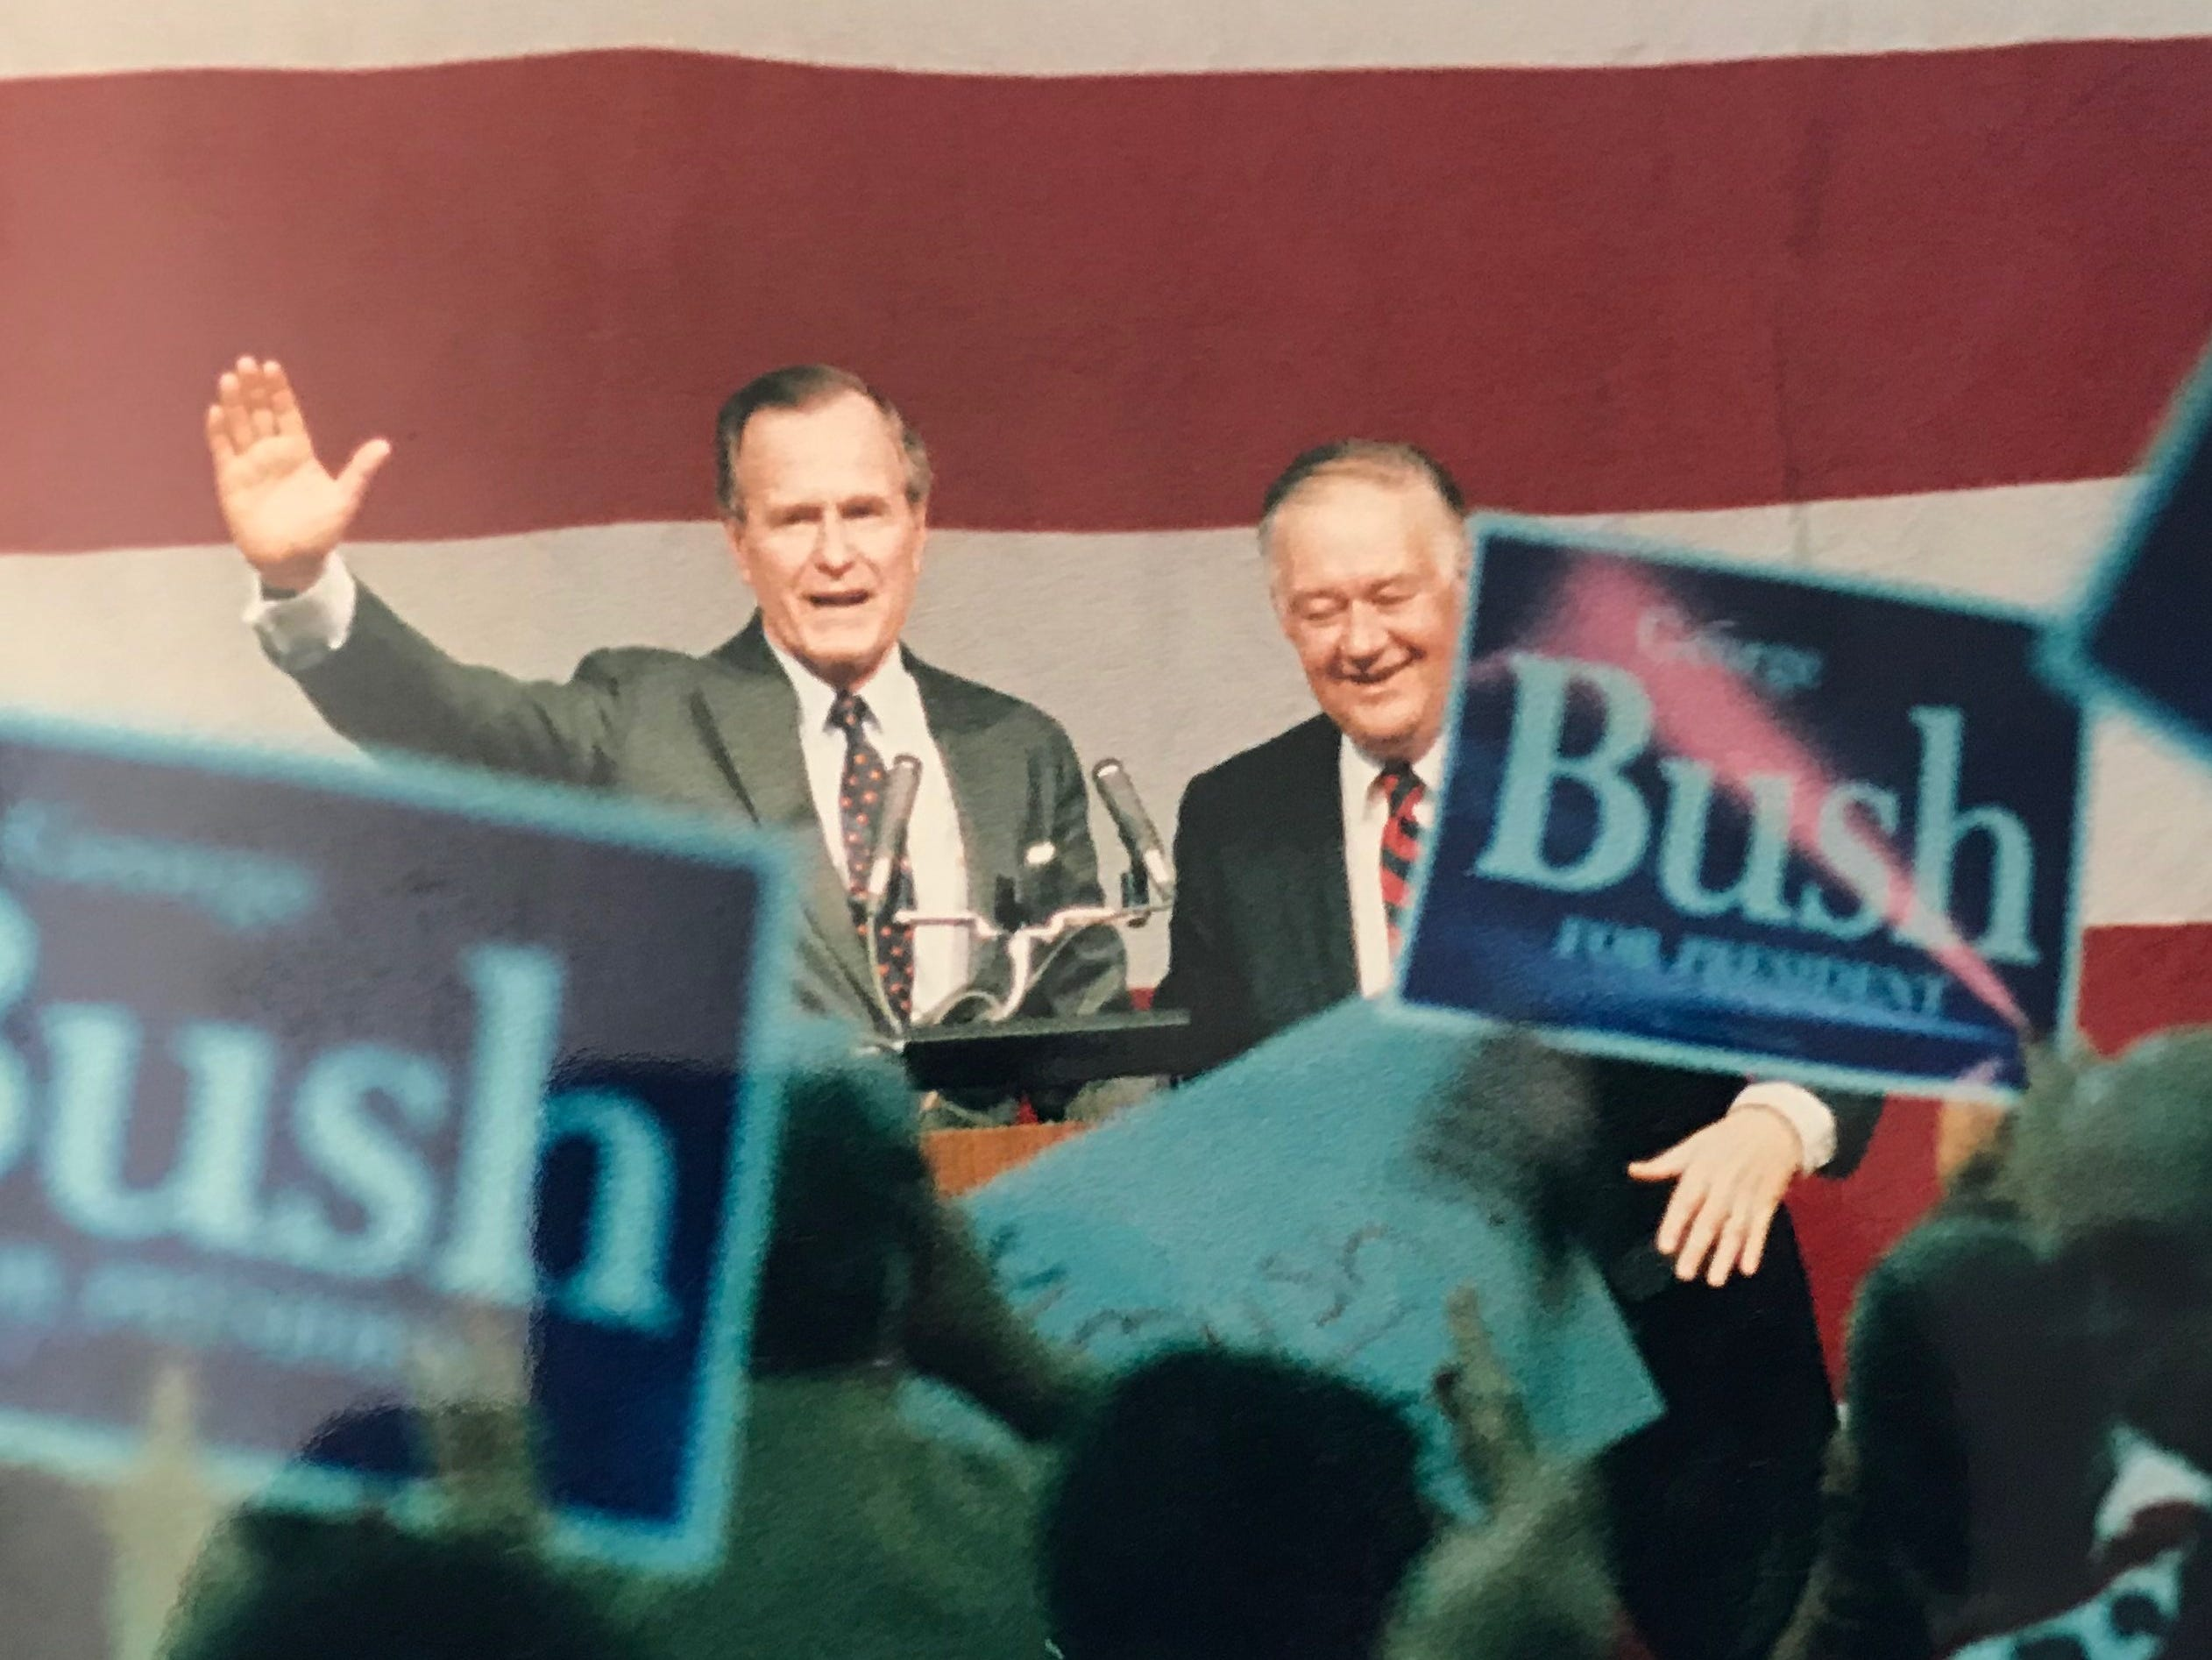 Vice President George H.W. Bush during a Springfield campaign visit in 1988 as he campaigned for president.